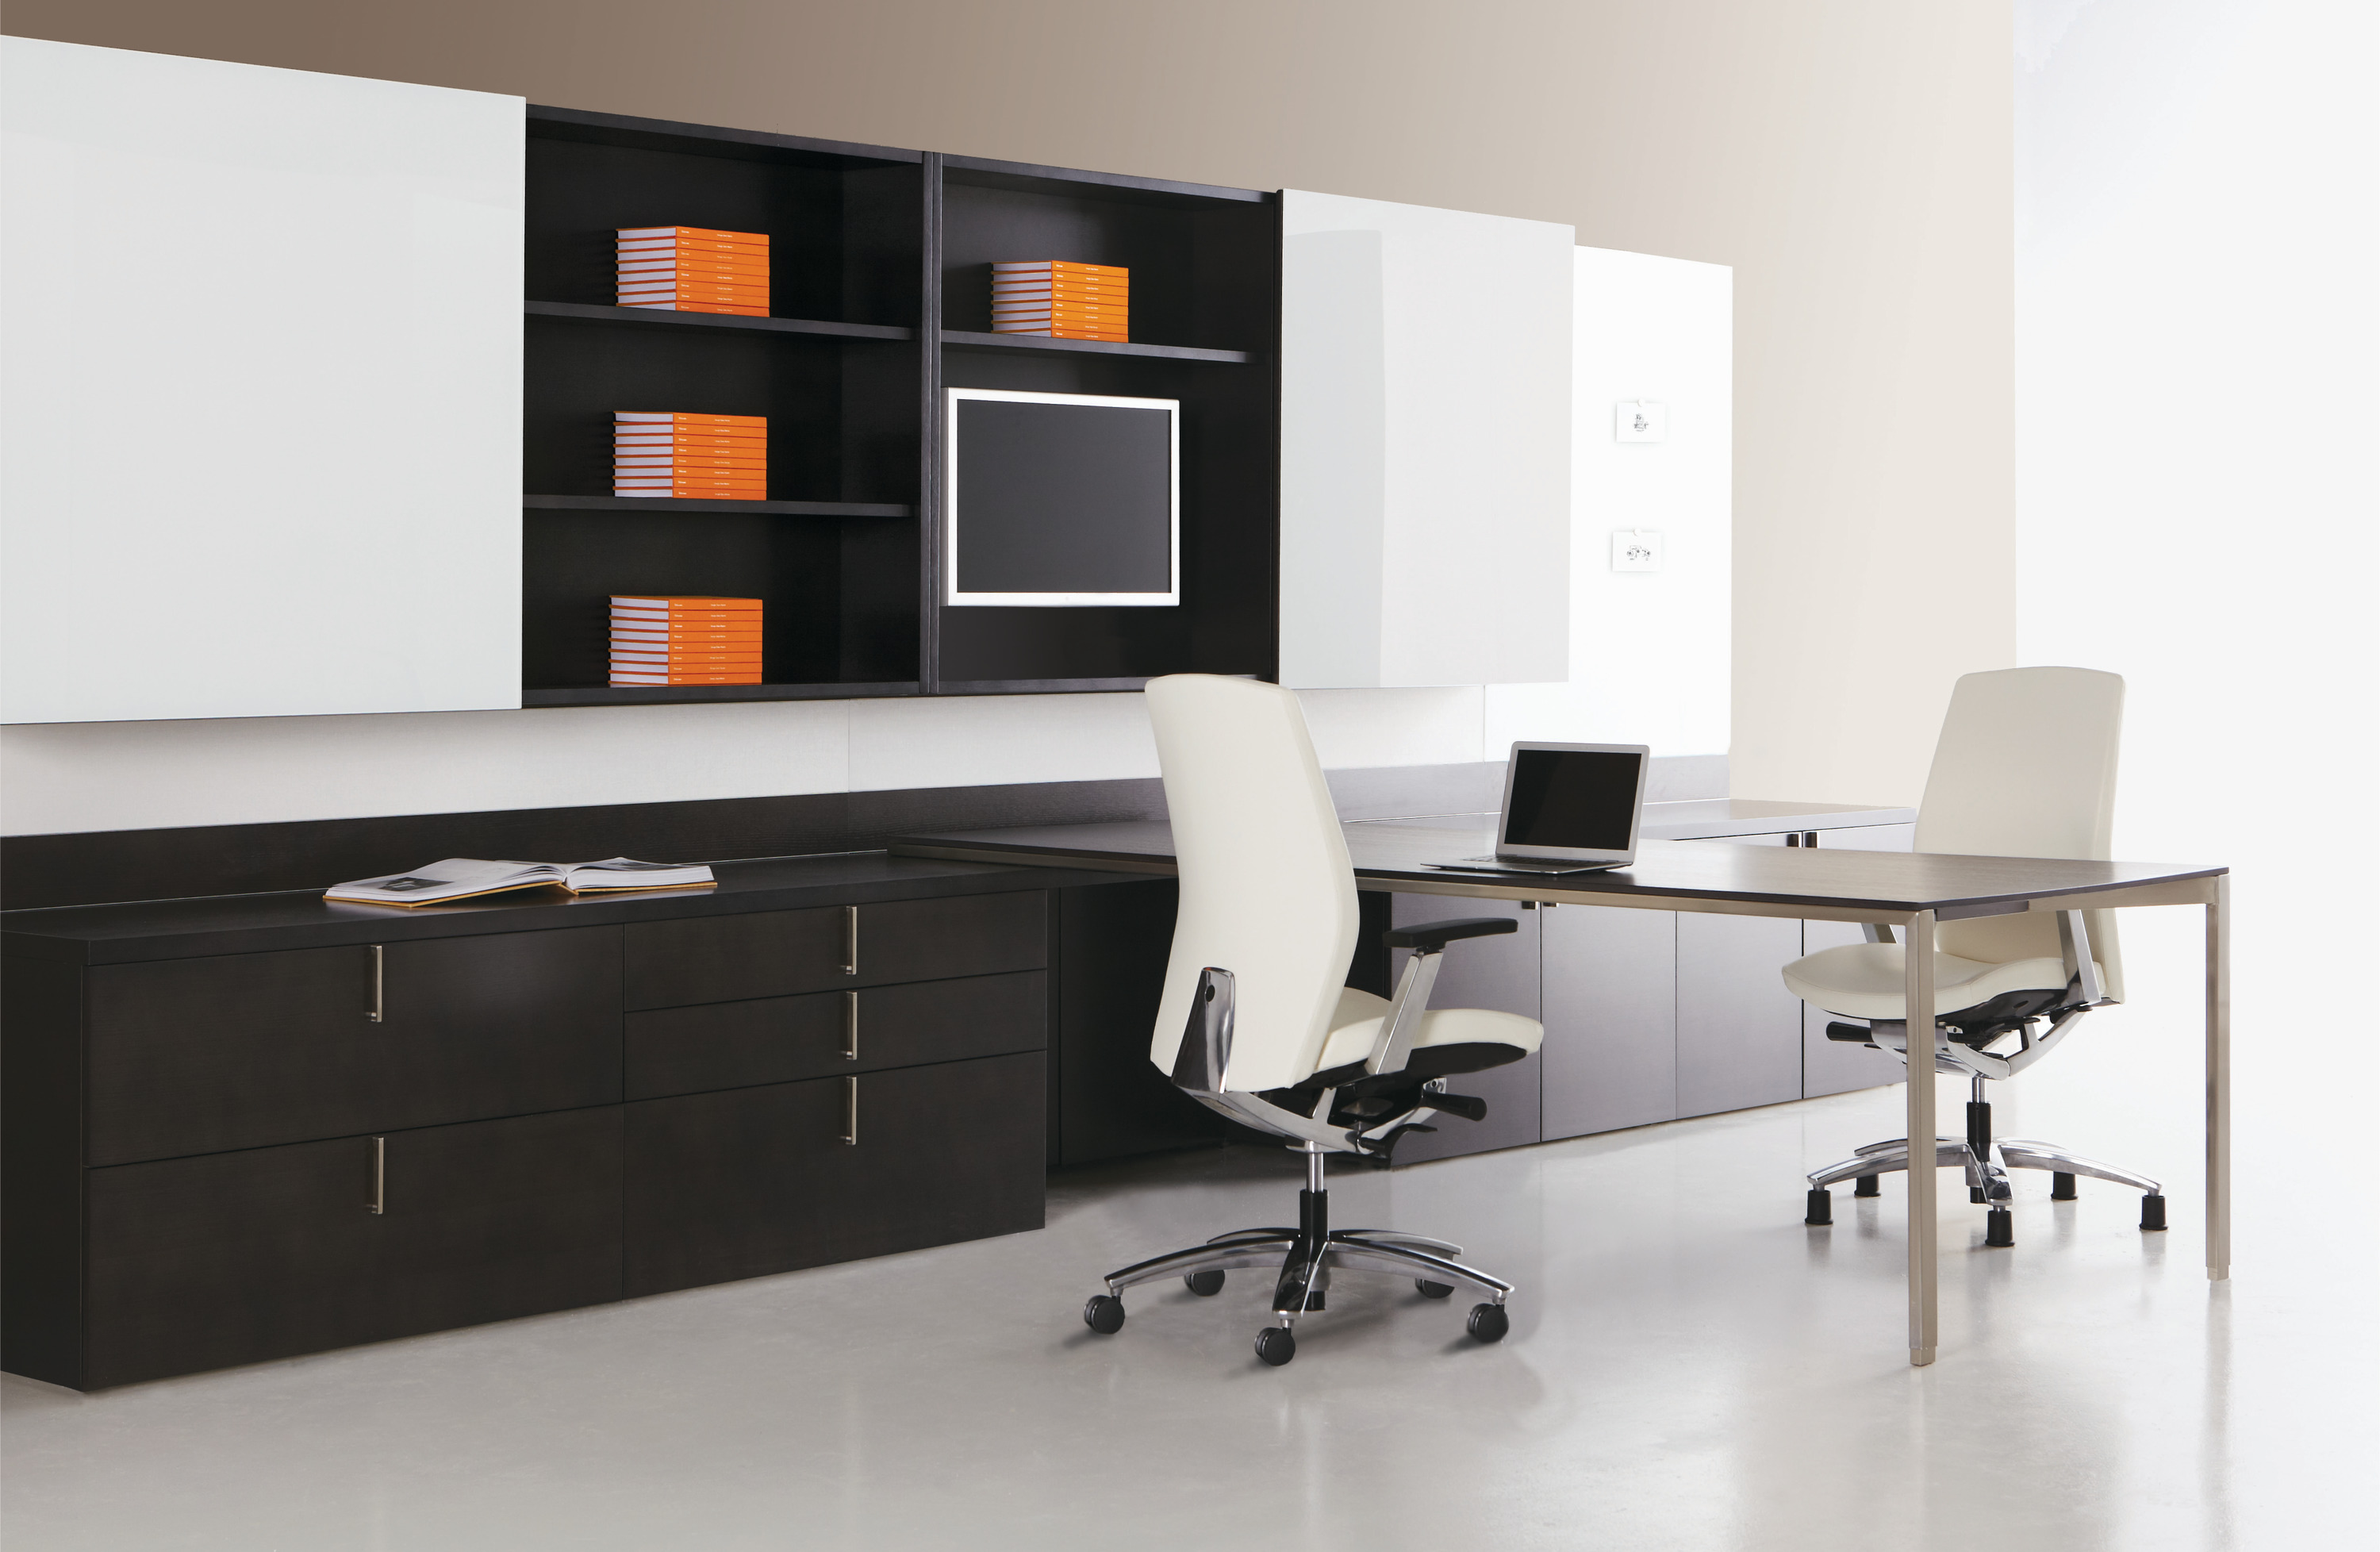 Dossier Modern Black and White Executive Office Furniture